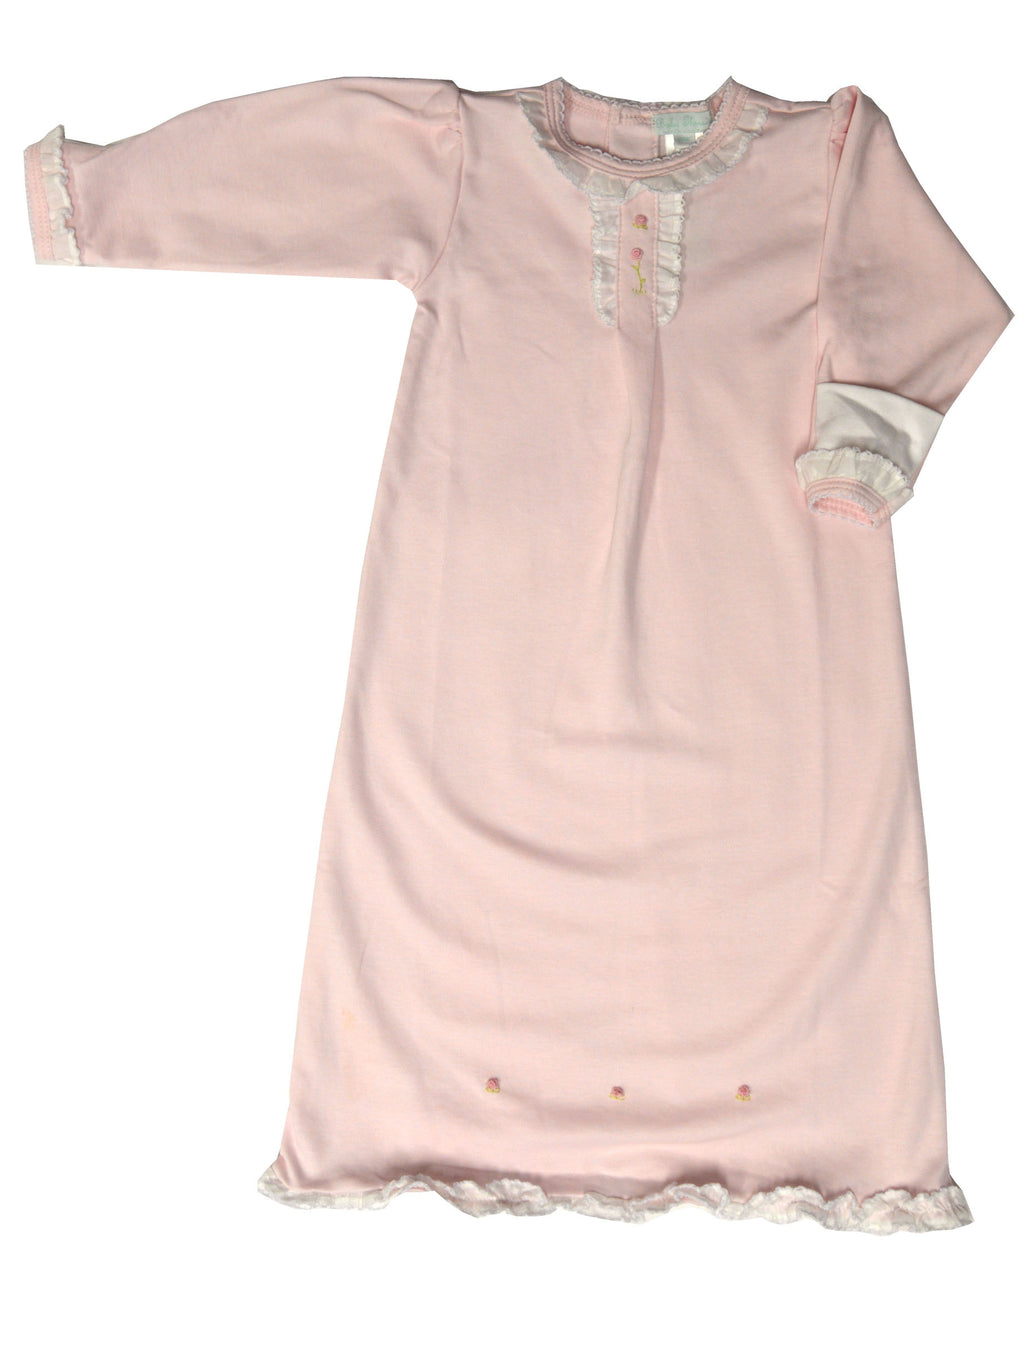 Baby Girl's Pink Ruffle Collar Rose Daygown - Little Threads Inc. Children's Clothing